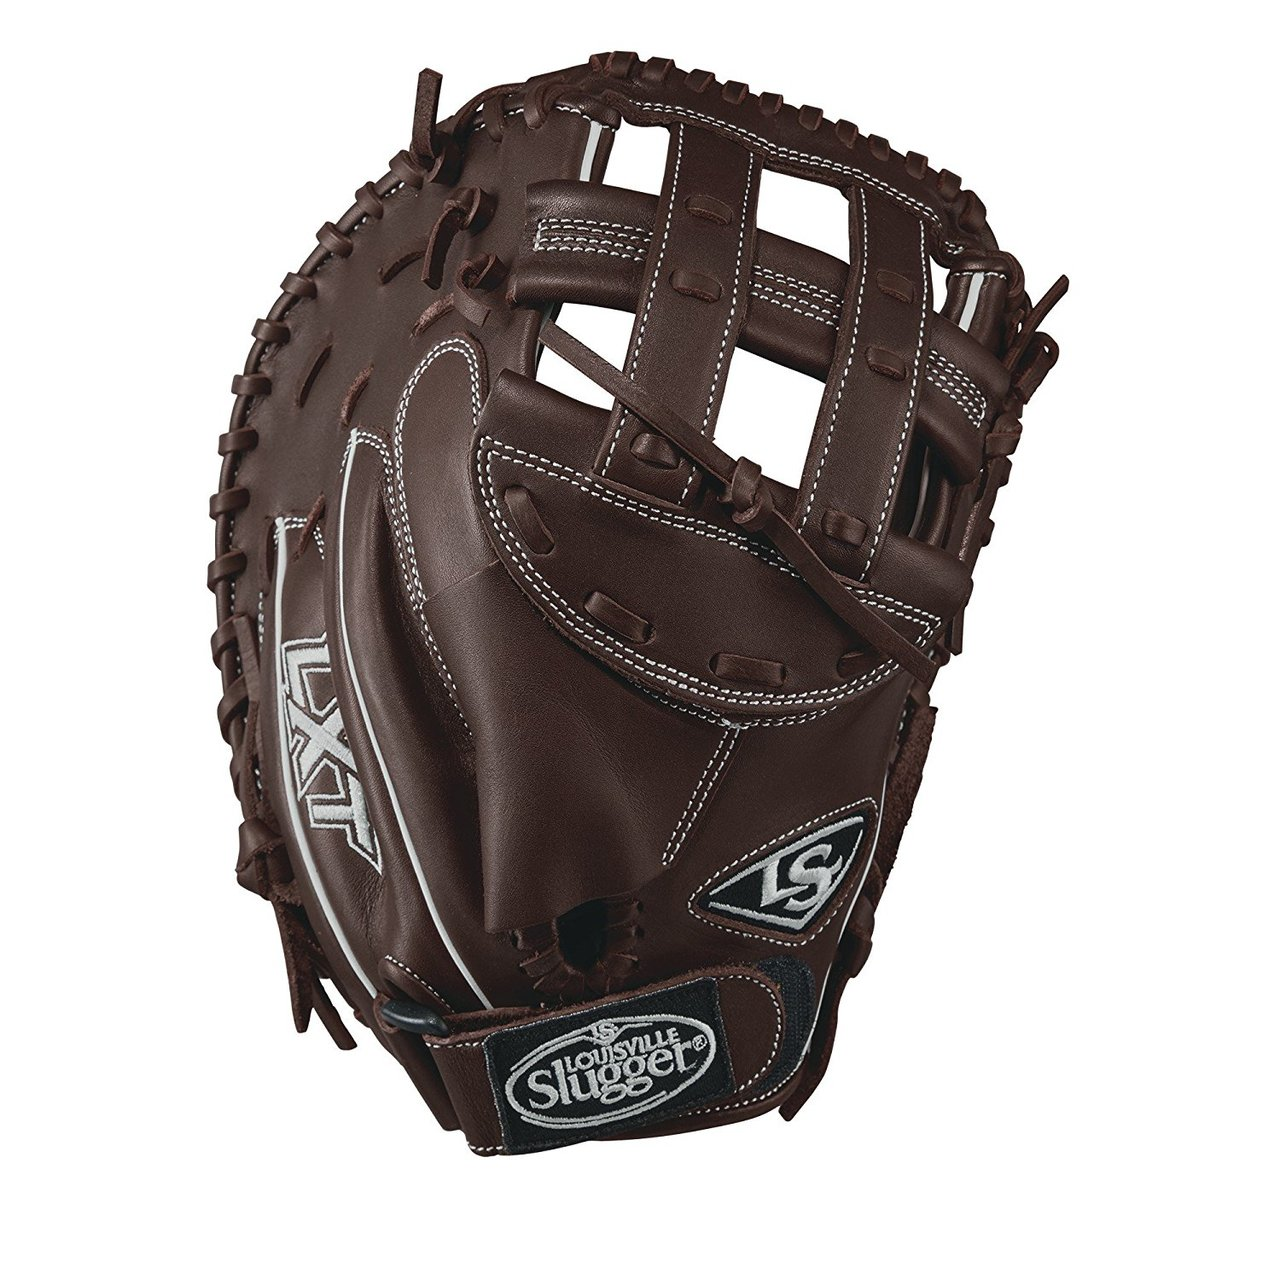 louisville-slugger-lxt-catchers-mitt-right-hand-throw-33 WTLLXRF17CM-RightHandThrow Louisville 887768498177 Used by the top players the LXT has established itself as